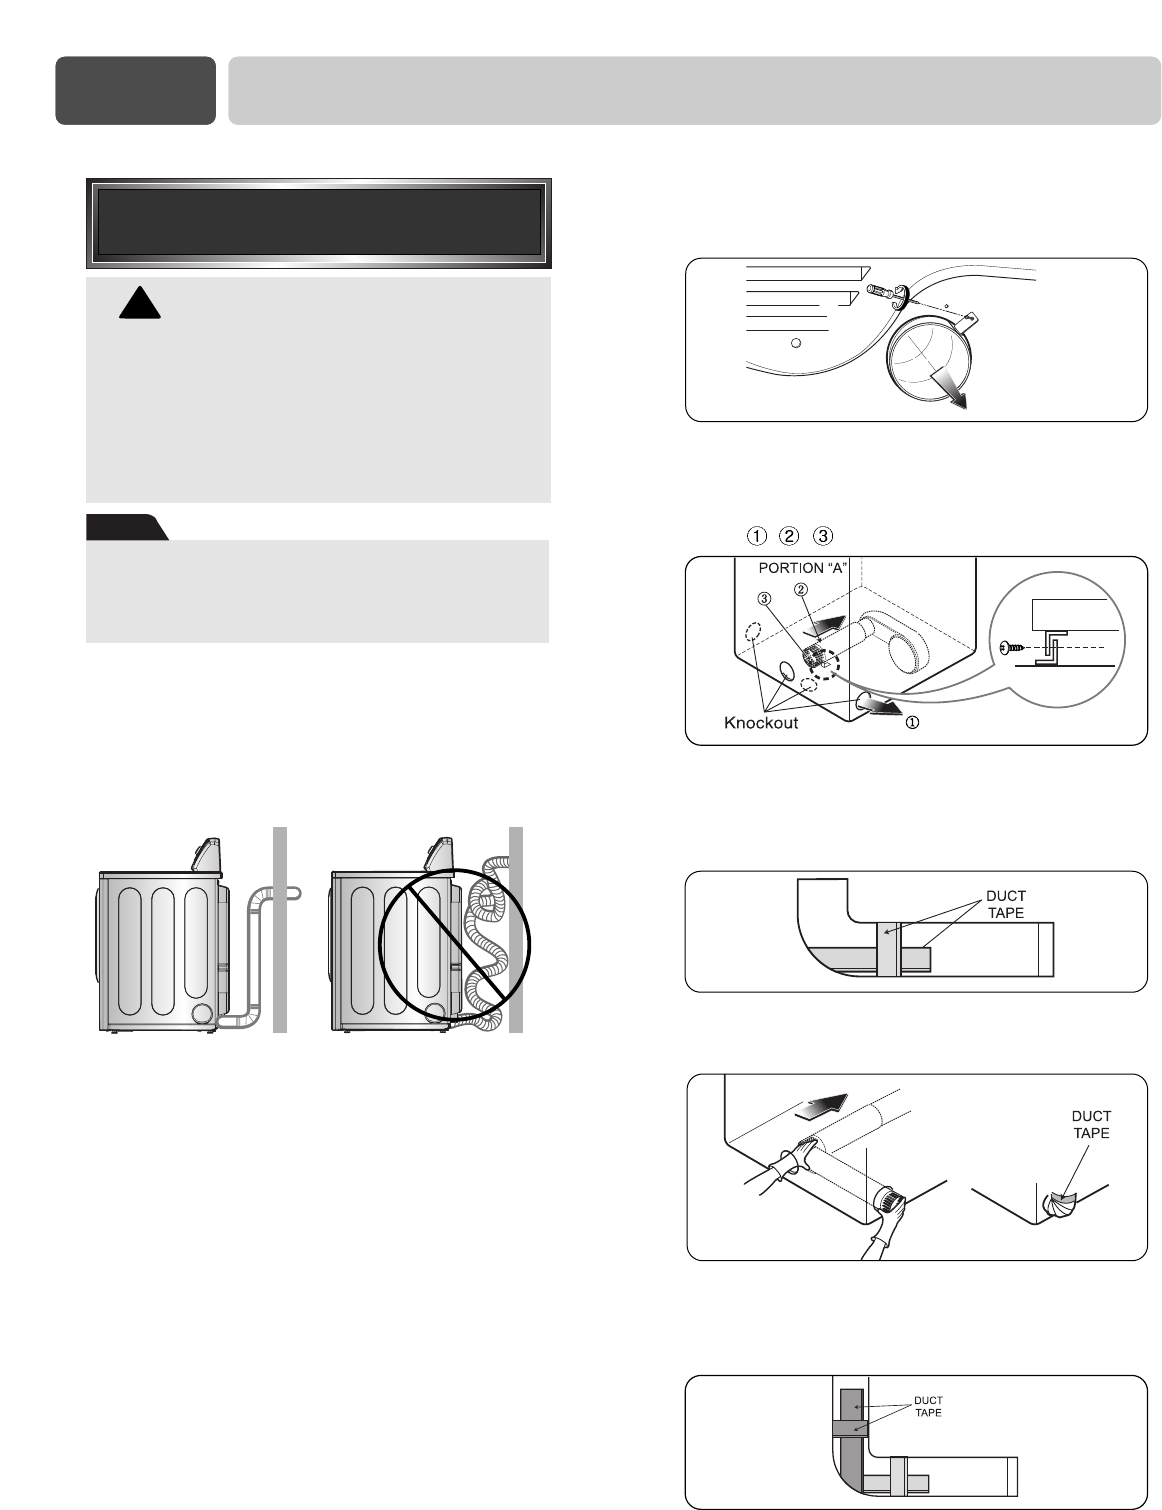 lg 2 in 1 washer dryer manual